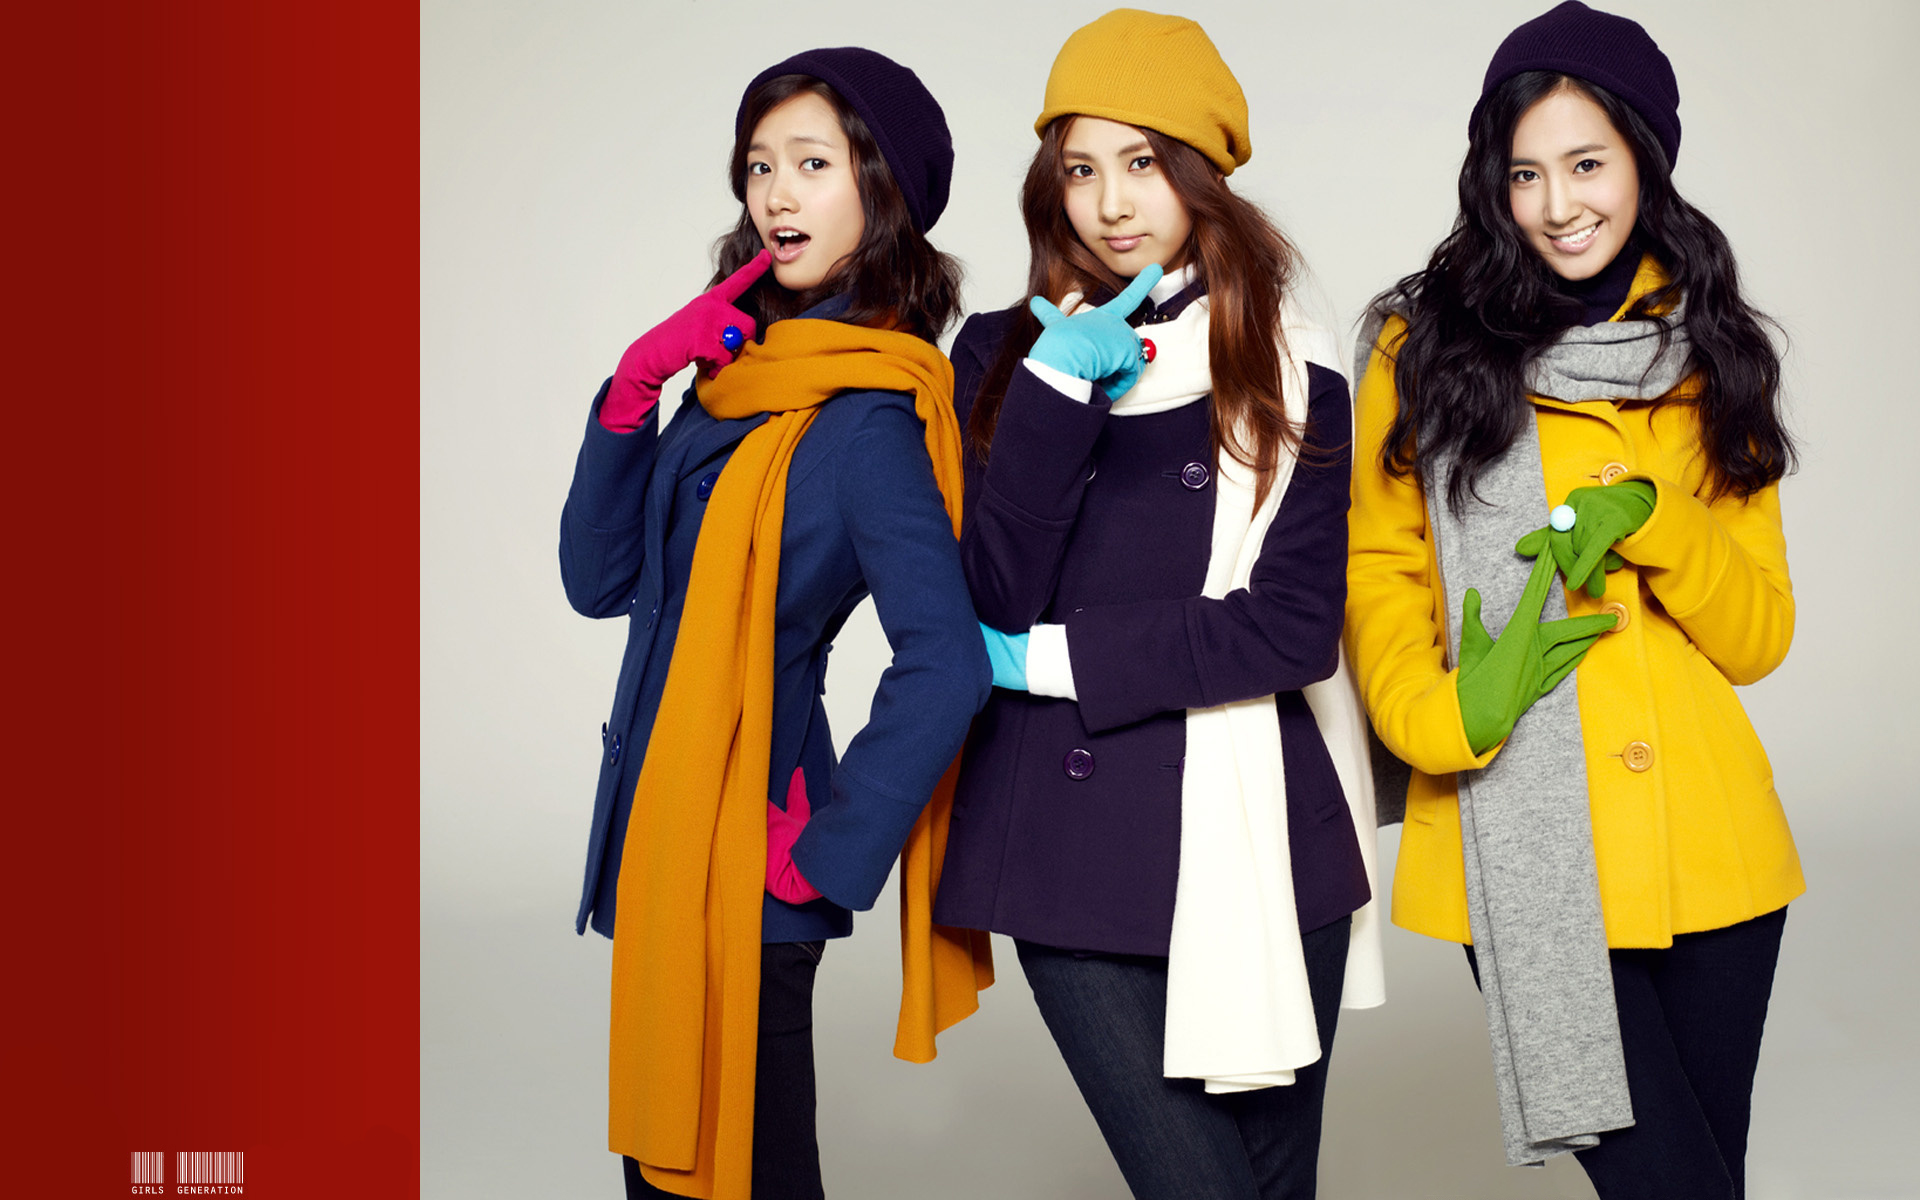 Soshi Winter Ready by 1126jjk